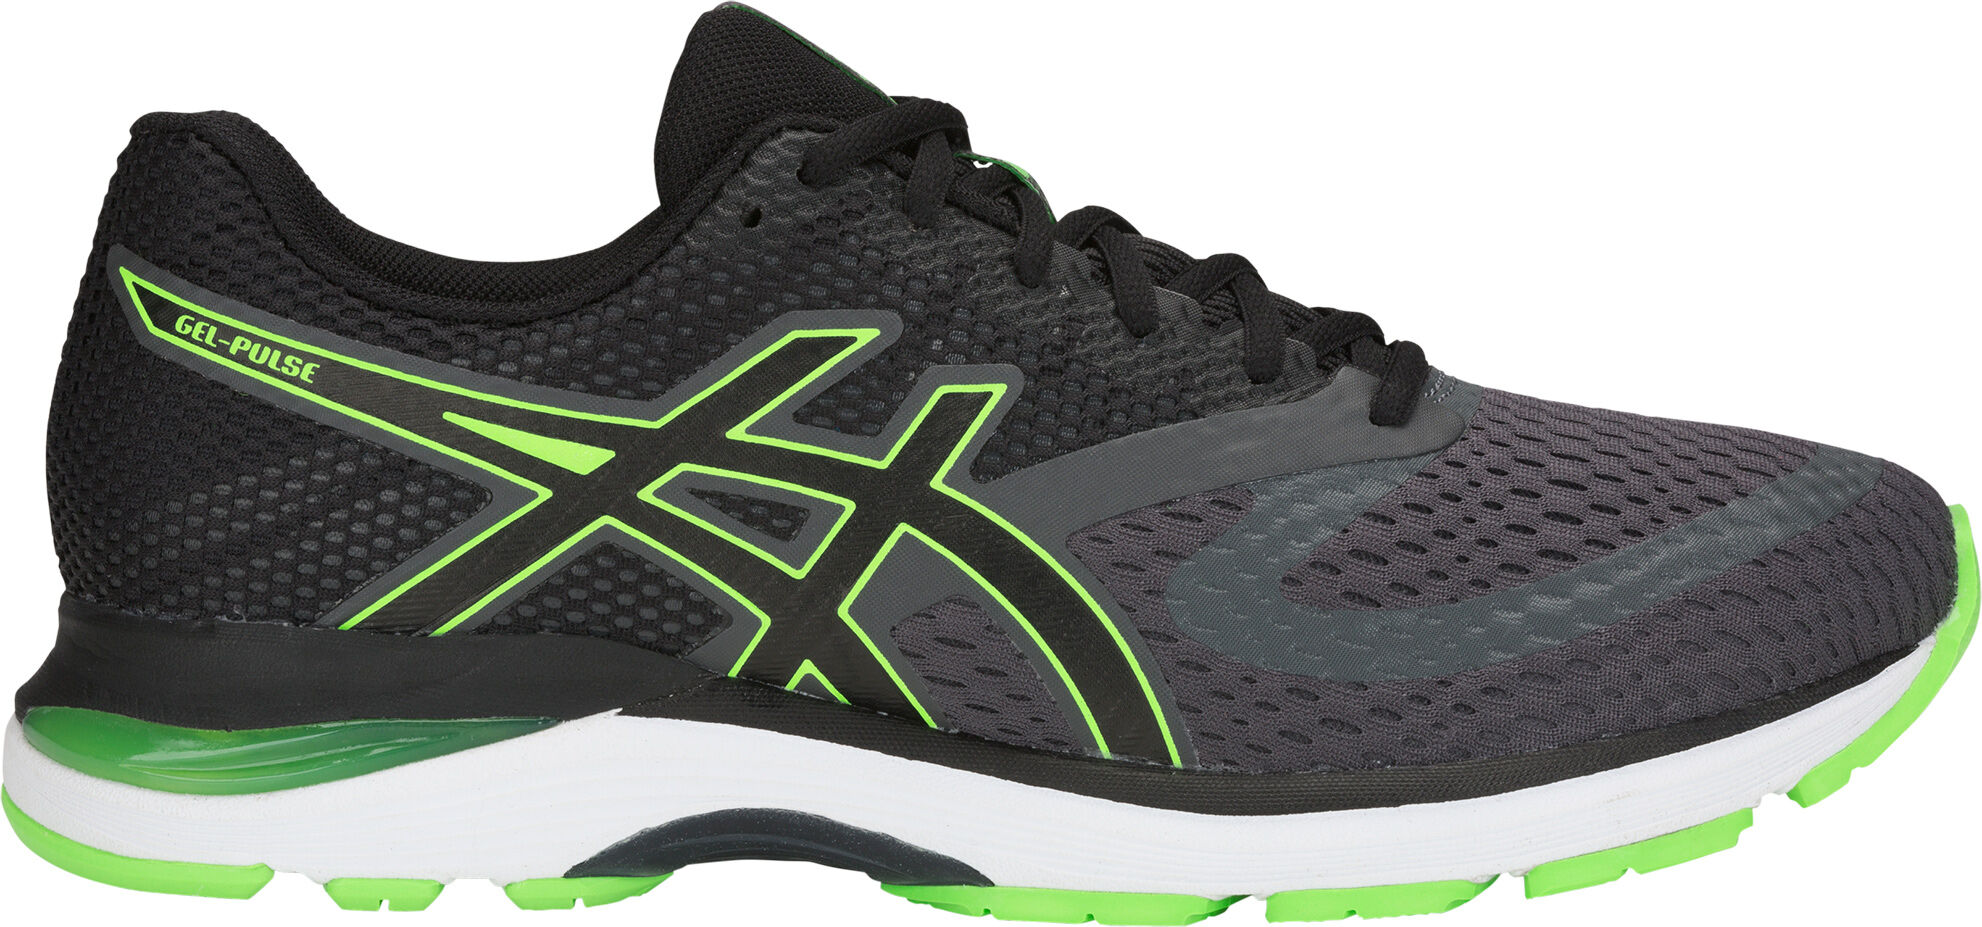 guantes running asics hombre